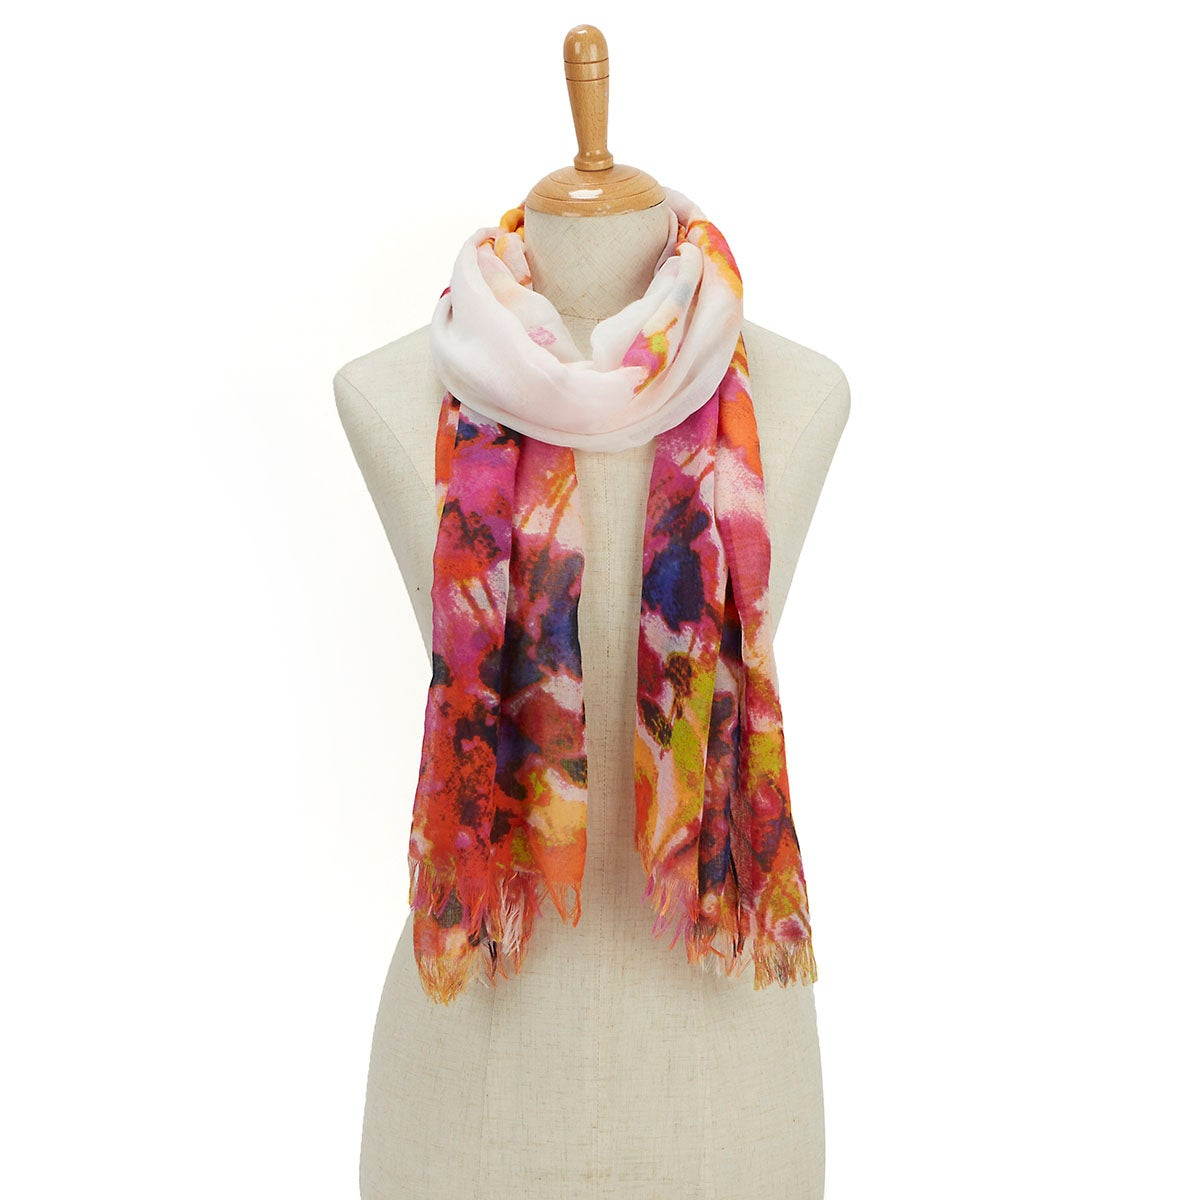 Women's GAUCHO GIRLS WATER FLORAL gold/pnk scarves